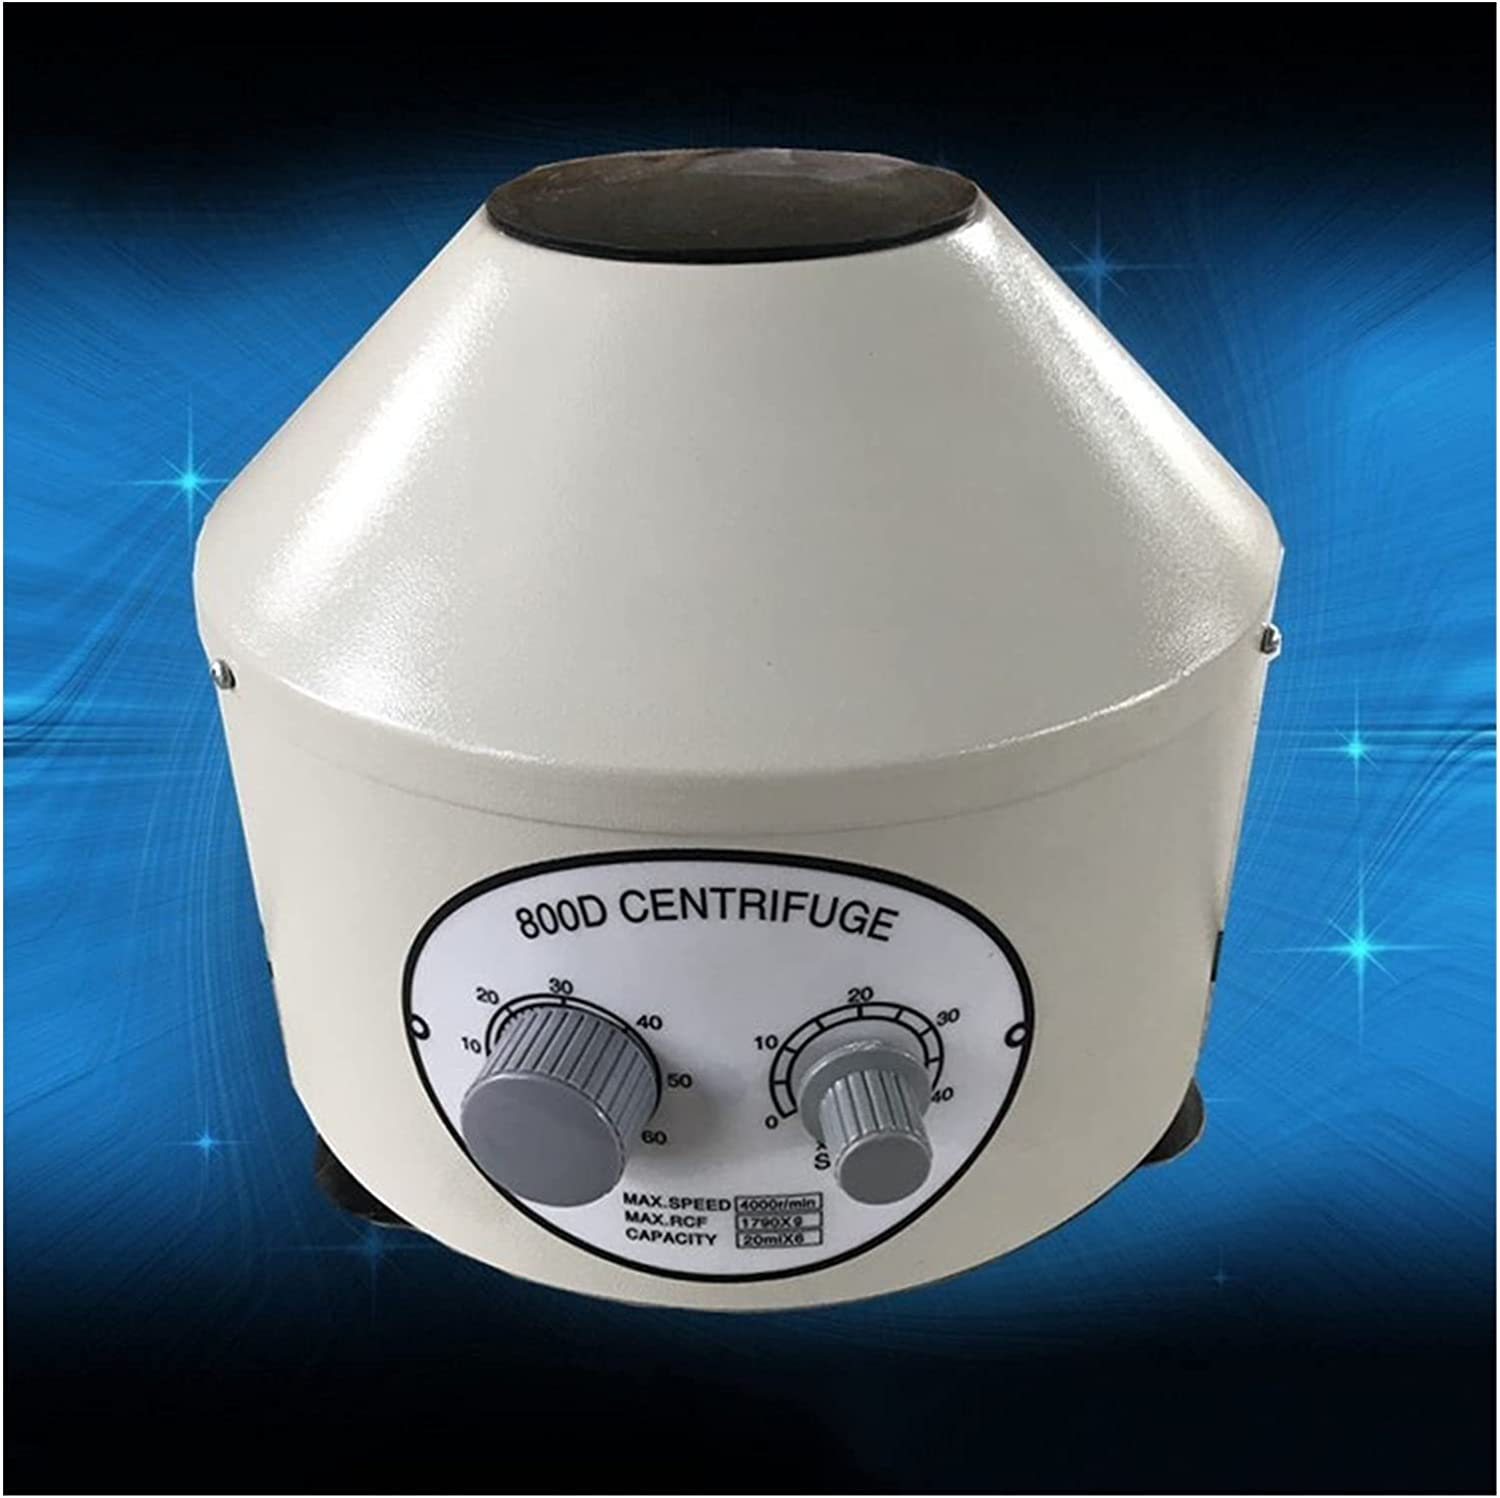 ZHU-CL Fashionable safety Electric Lab Centrifuge Low Spee 800D